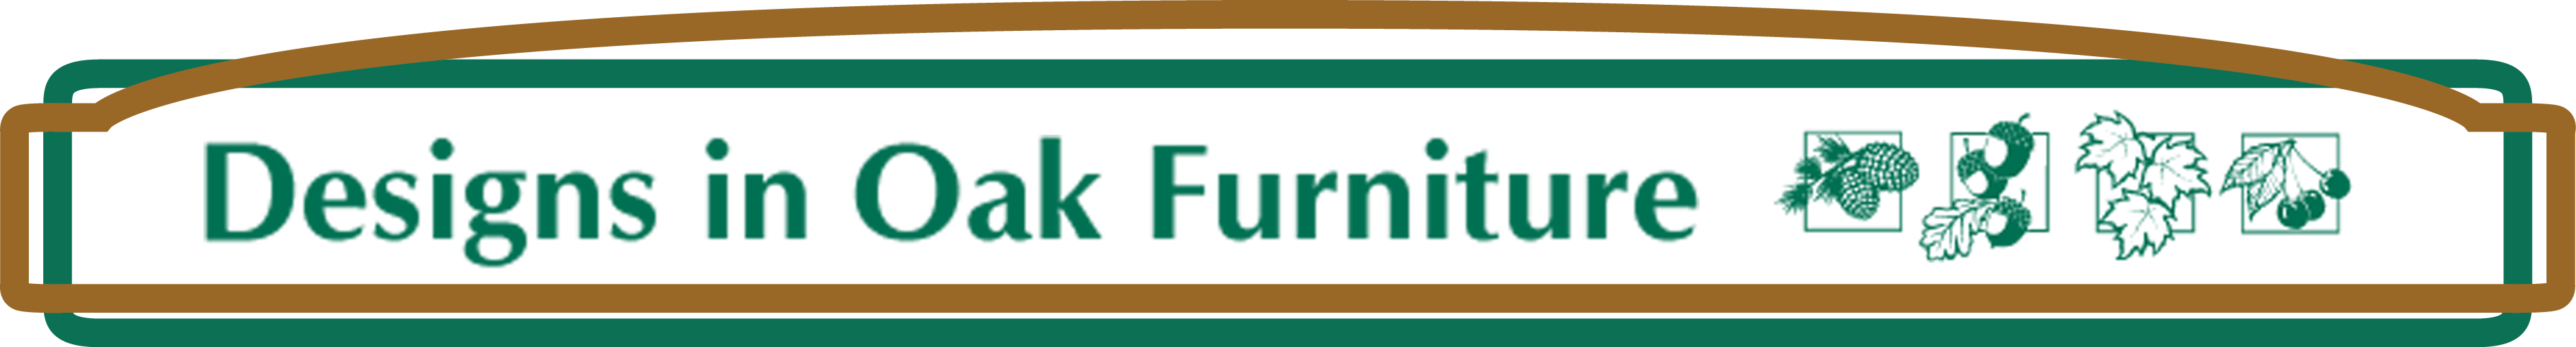 Fresno & Clovis Furniture Store - Living Room Furniture - Children\'s Furniture – Living Room Furniture - Fresno, CA